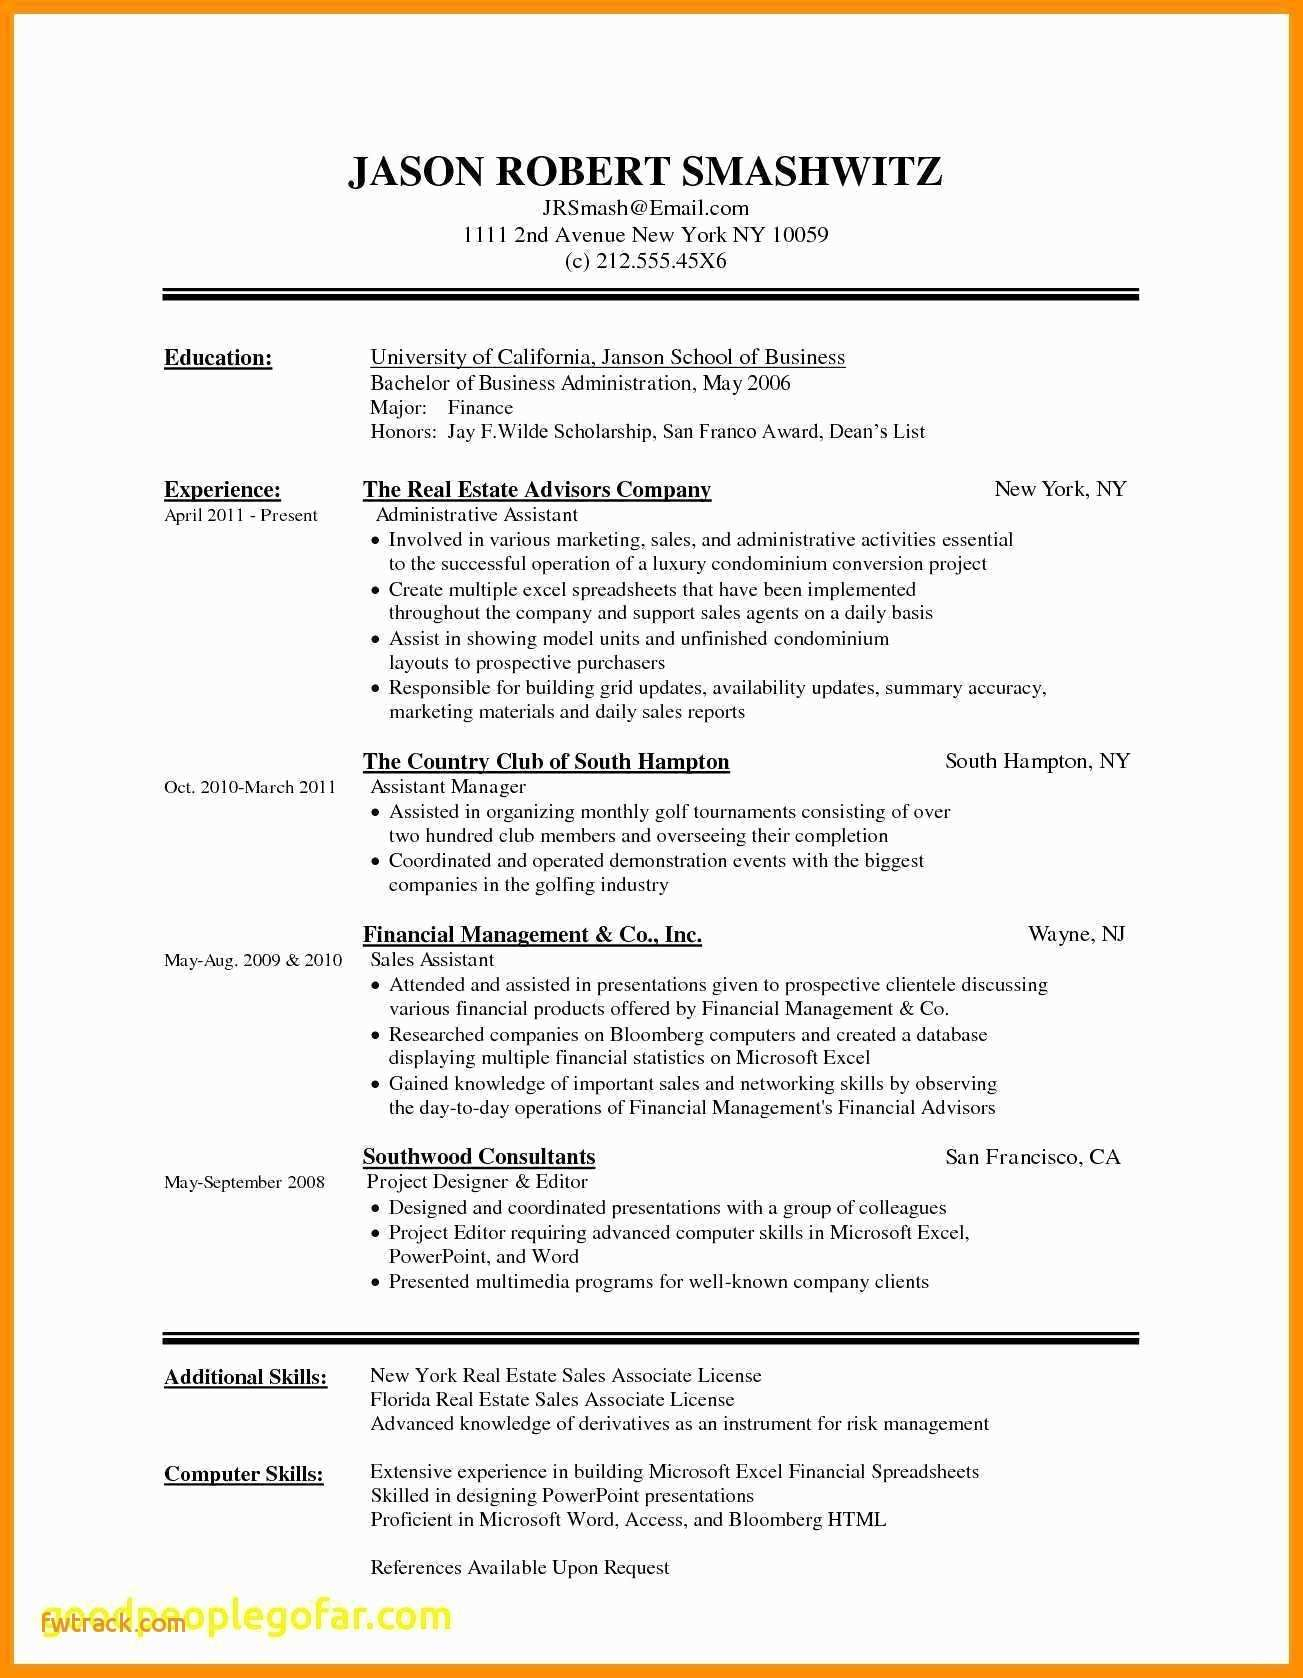 resume templates pages Collection-Resume Templates for Pages 14-k